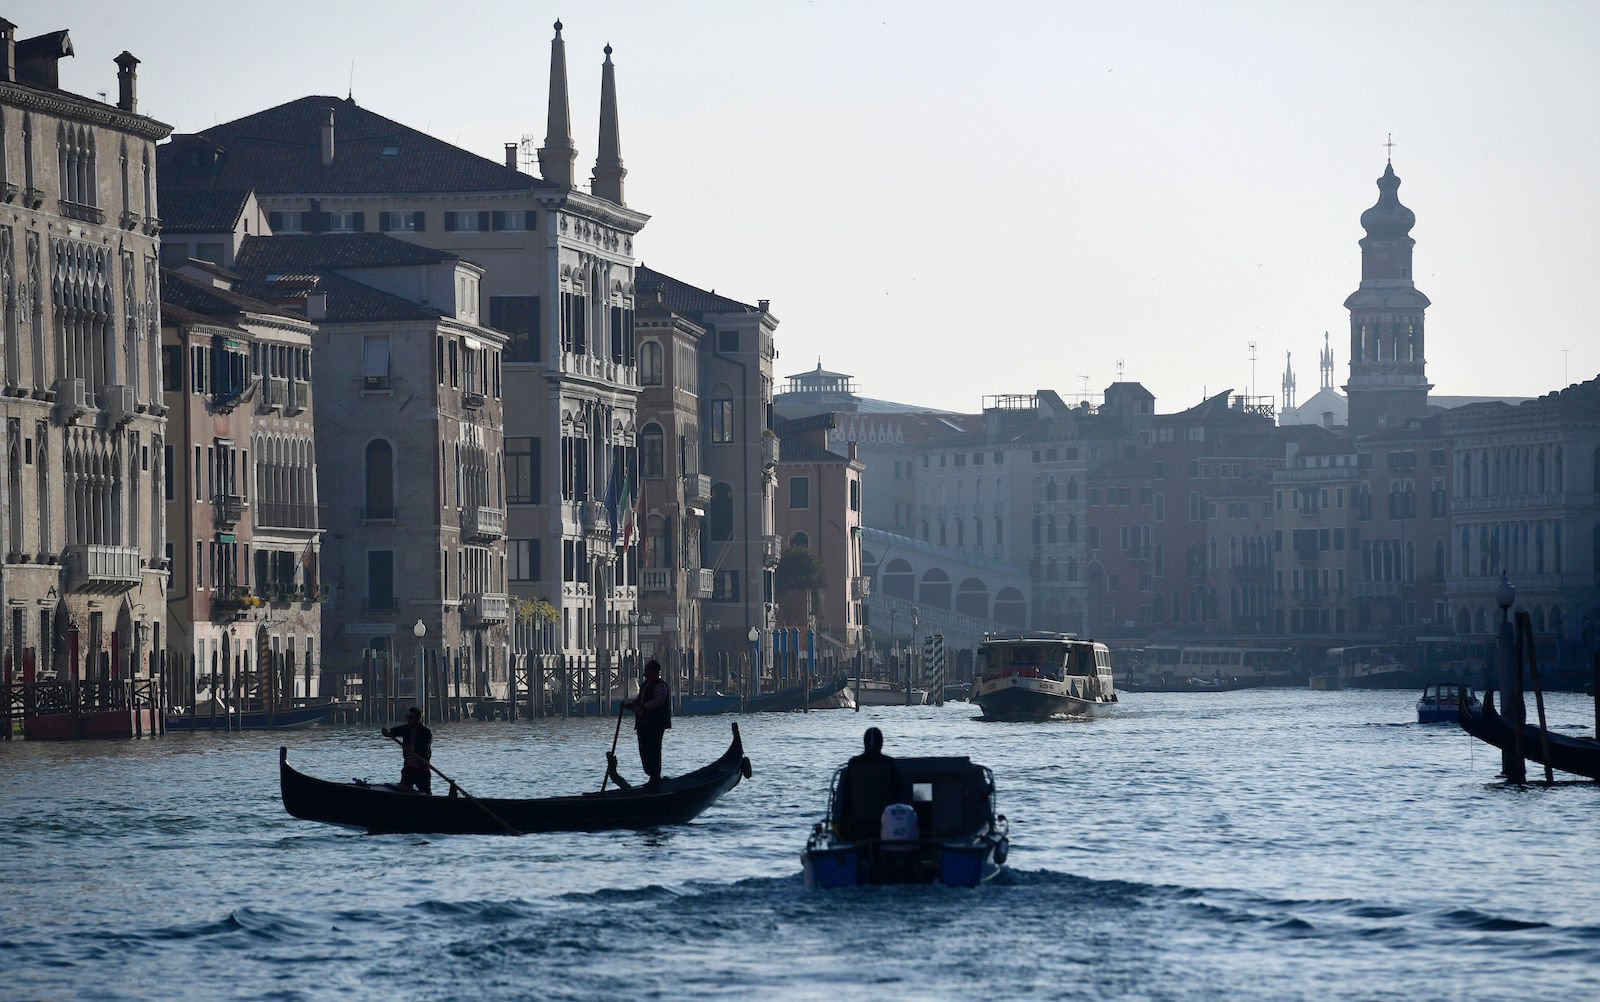 A Venice gondoliere makes his way down the Grand Canal.